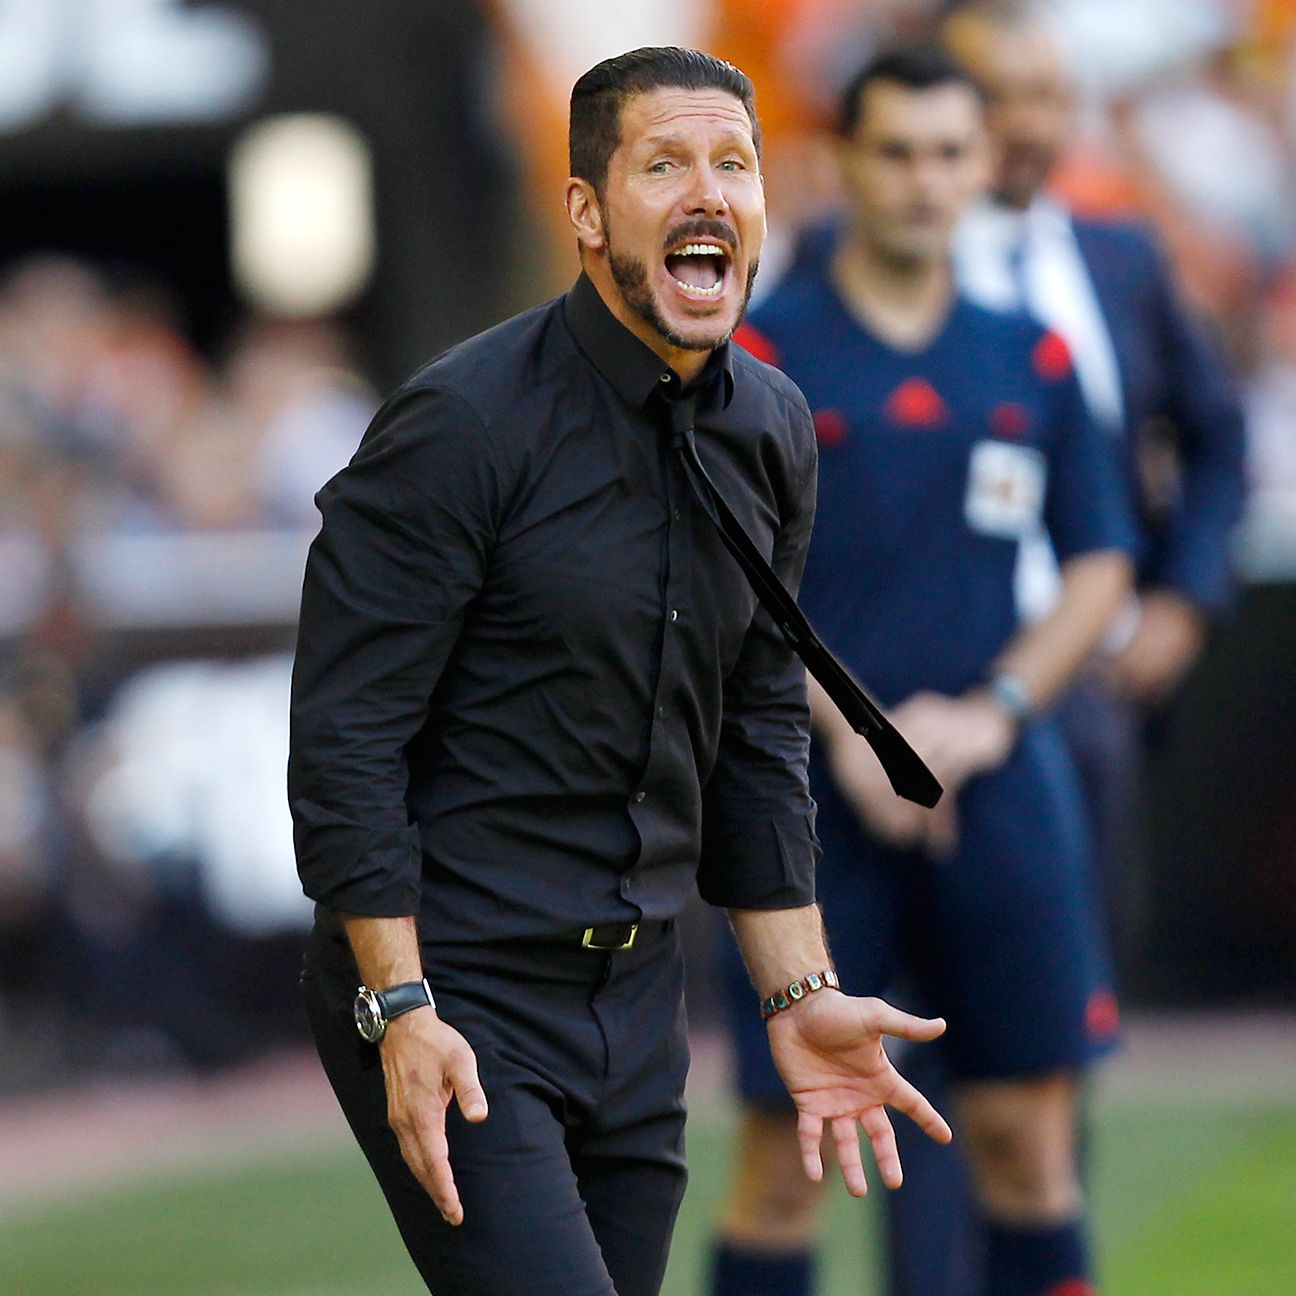 Diego Simeone's Atletico Madrid have encountered some hurdles in the first months of their title defence.